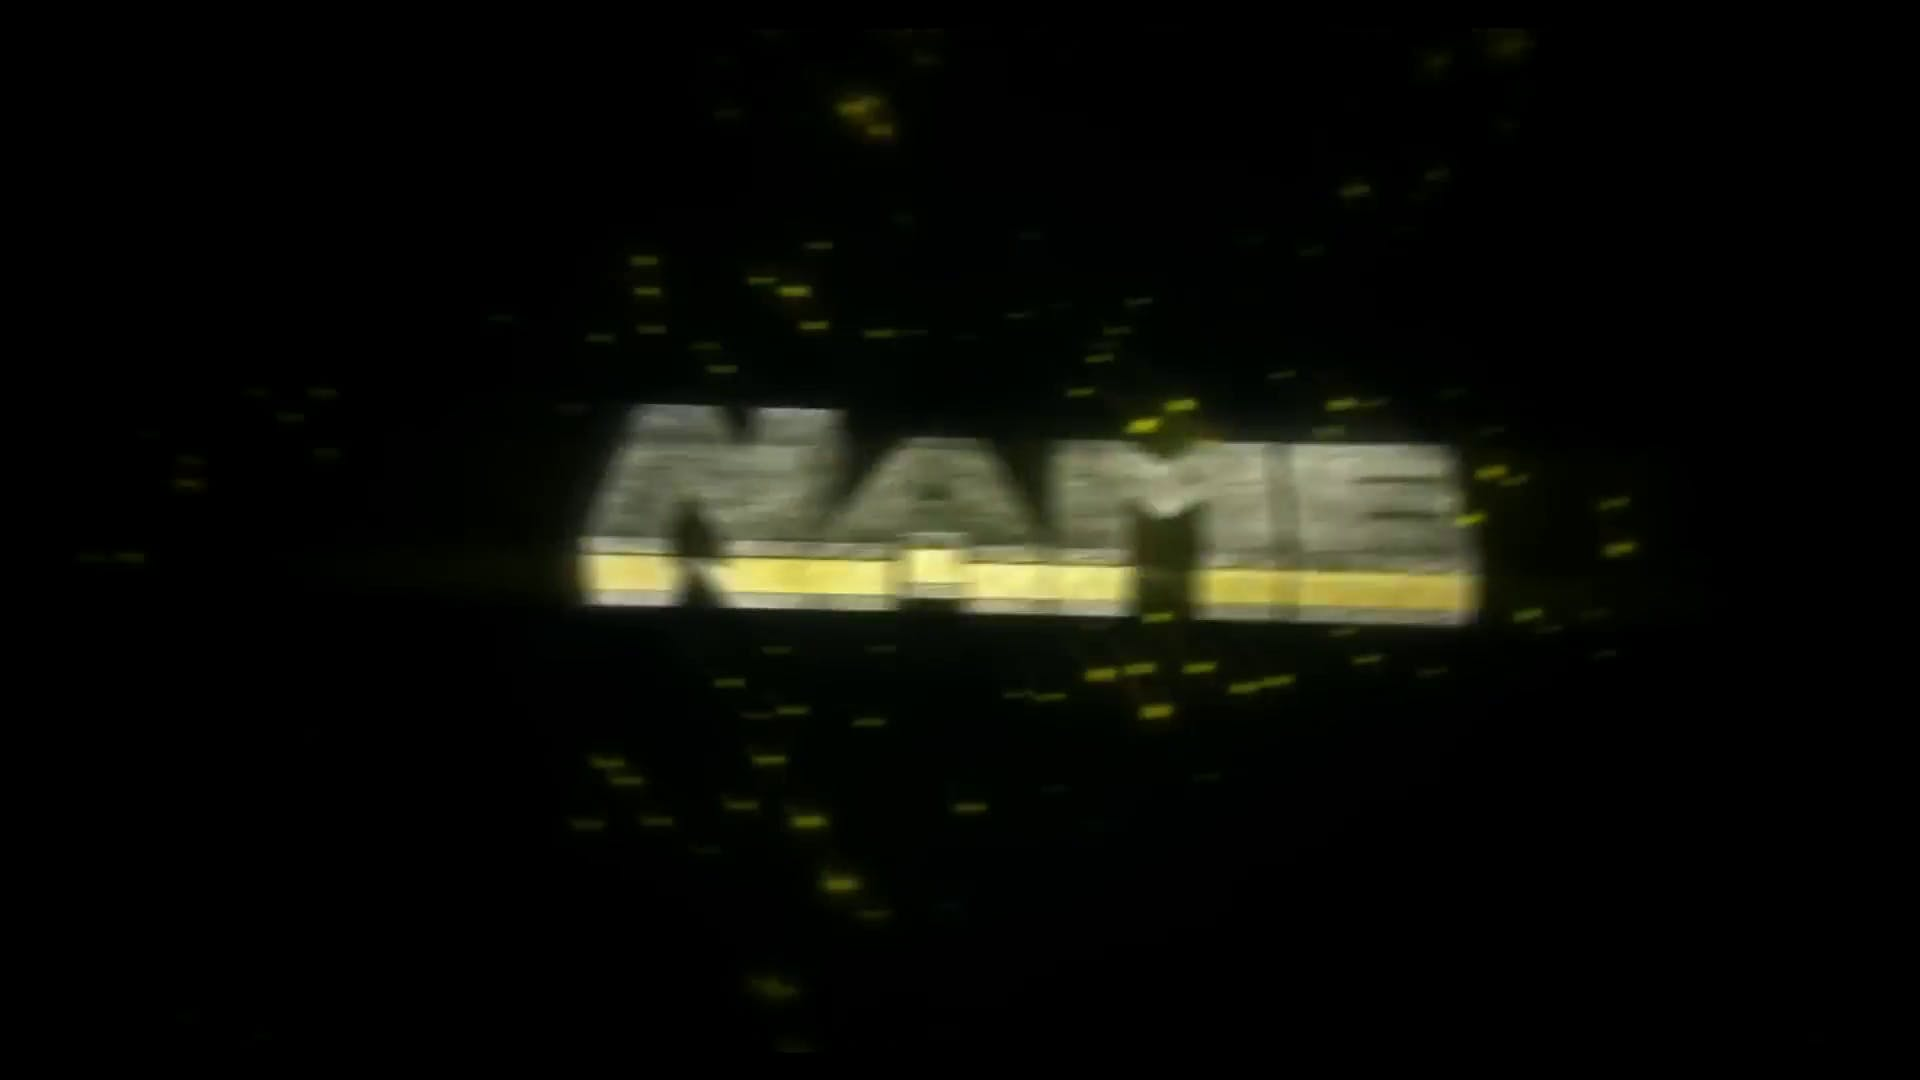 FREE GOLD Cinema 4D After Effects Intro Template